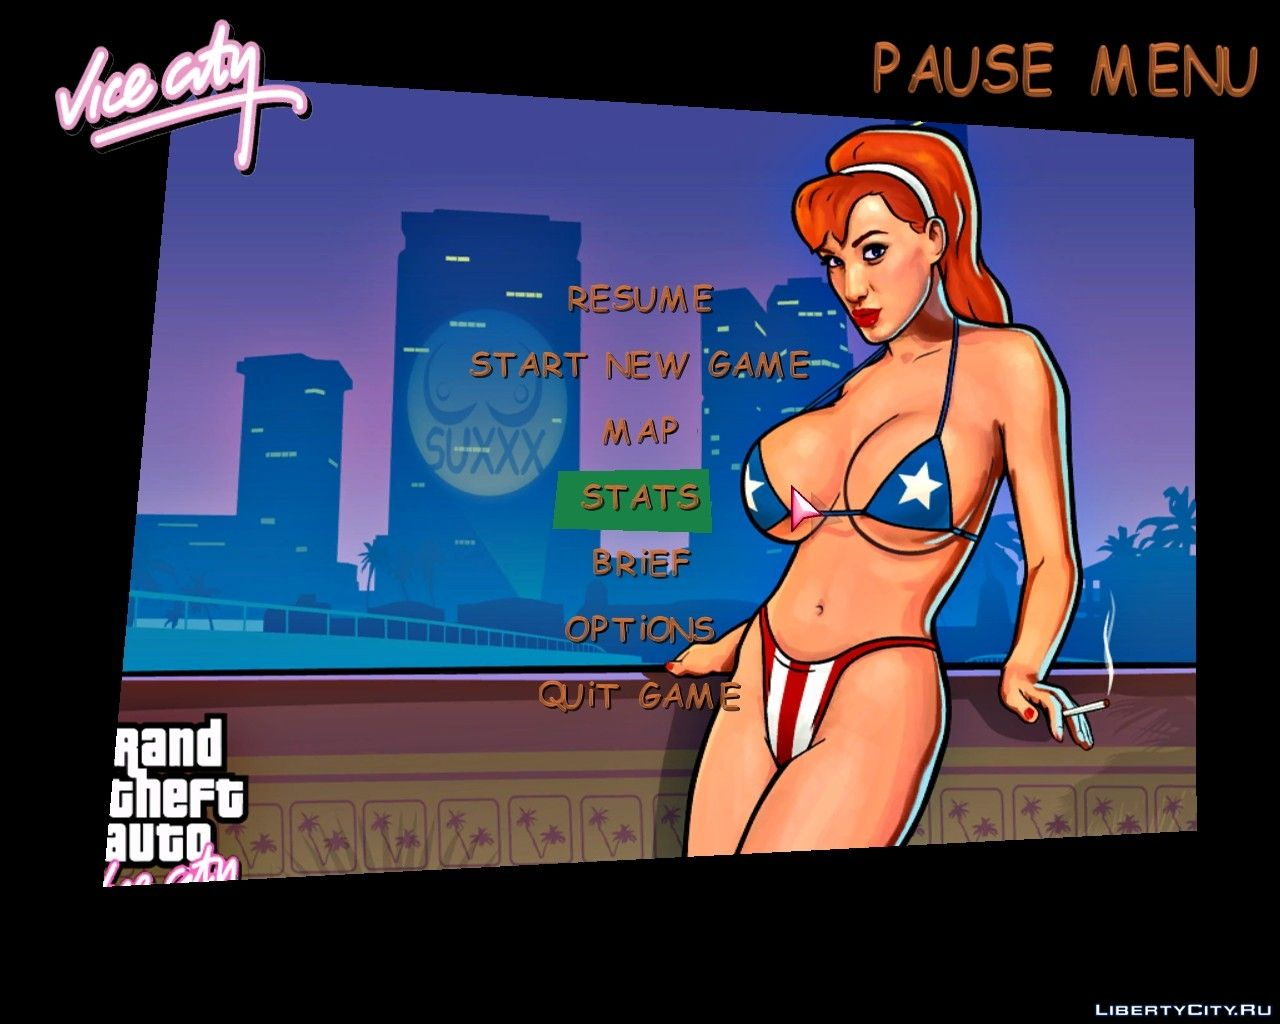 Vice city porn pic sexual bad booty